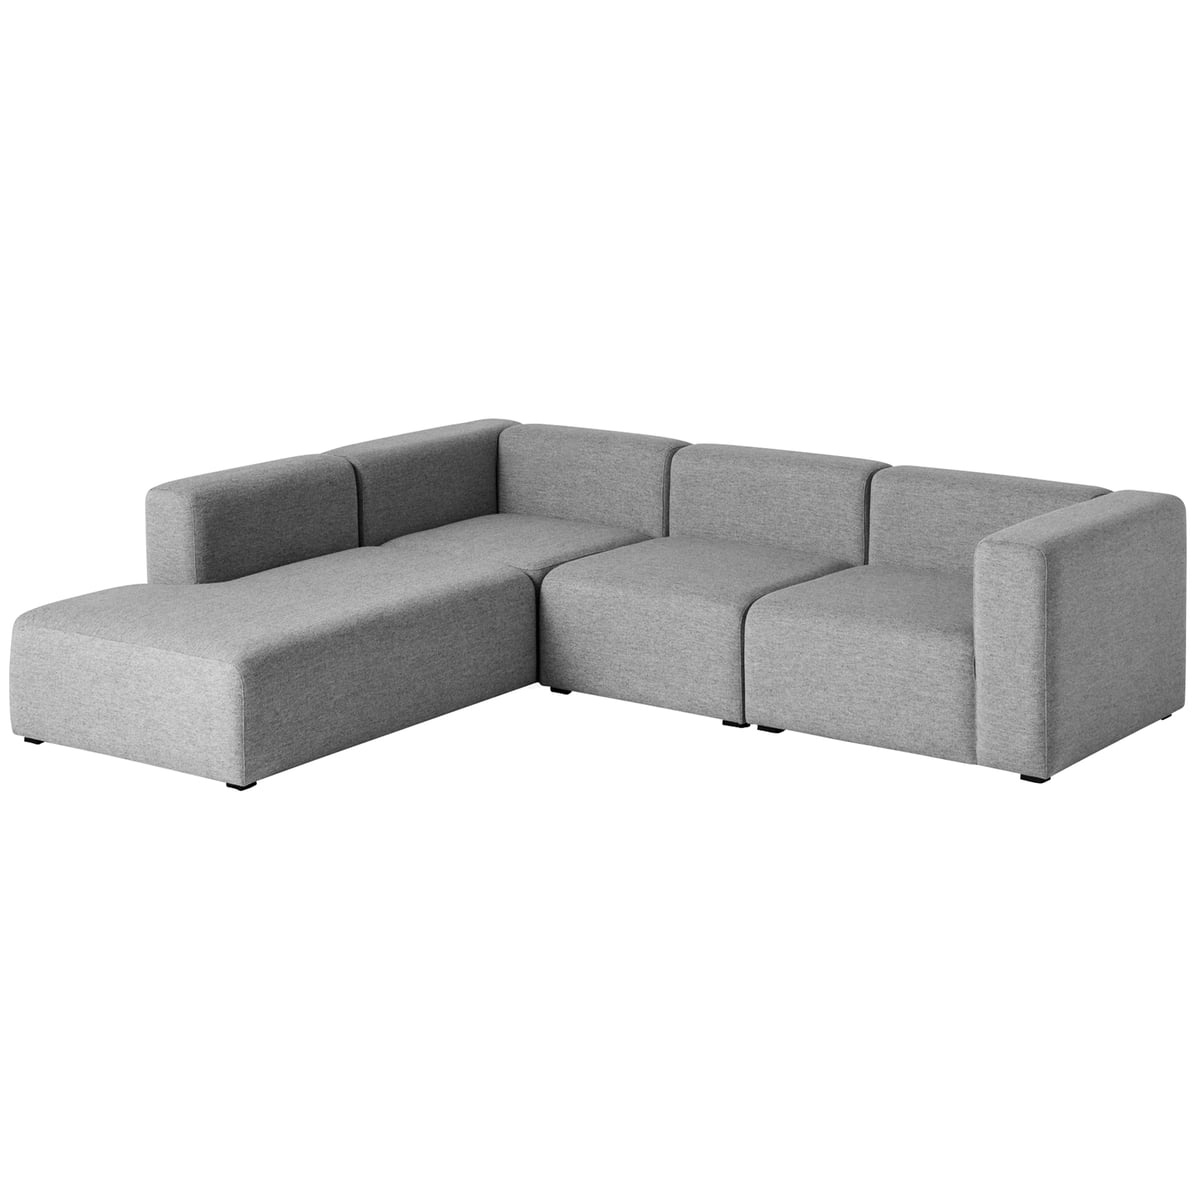 Mags Corner Sofa Combination by Hay | Connox